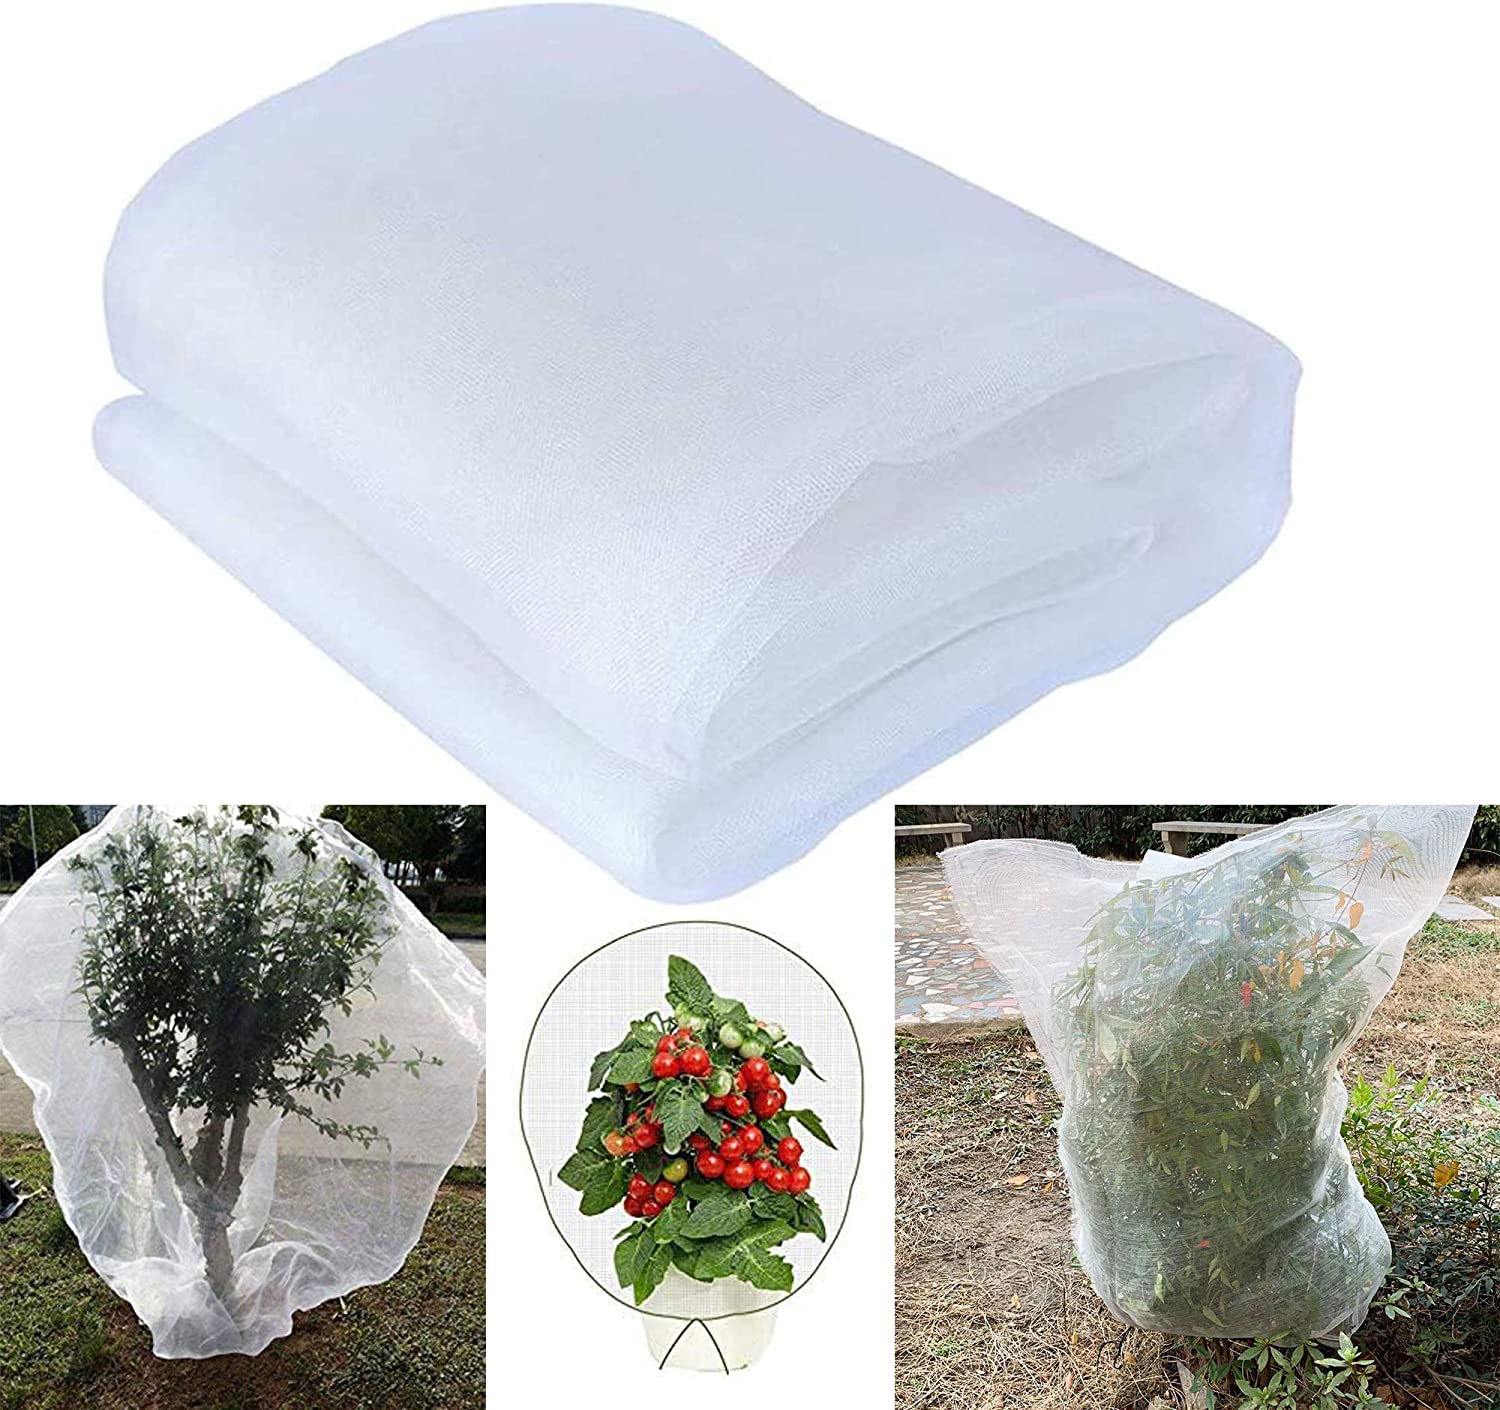 4 Pack Insect Bird Barrier Net Mesh with Drawstring, 3.5Ftx2.3Ft Tomato Protective Cover Garden Plant Barrier Bag for Vegetables Fruits Flower from Insect Bird Eating